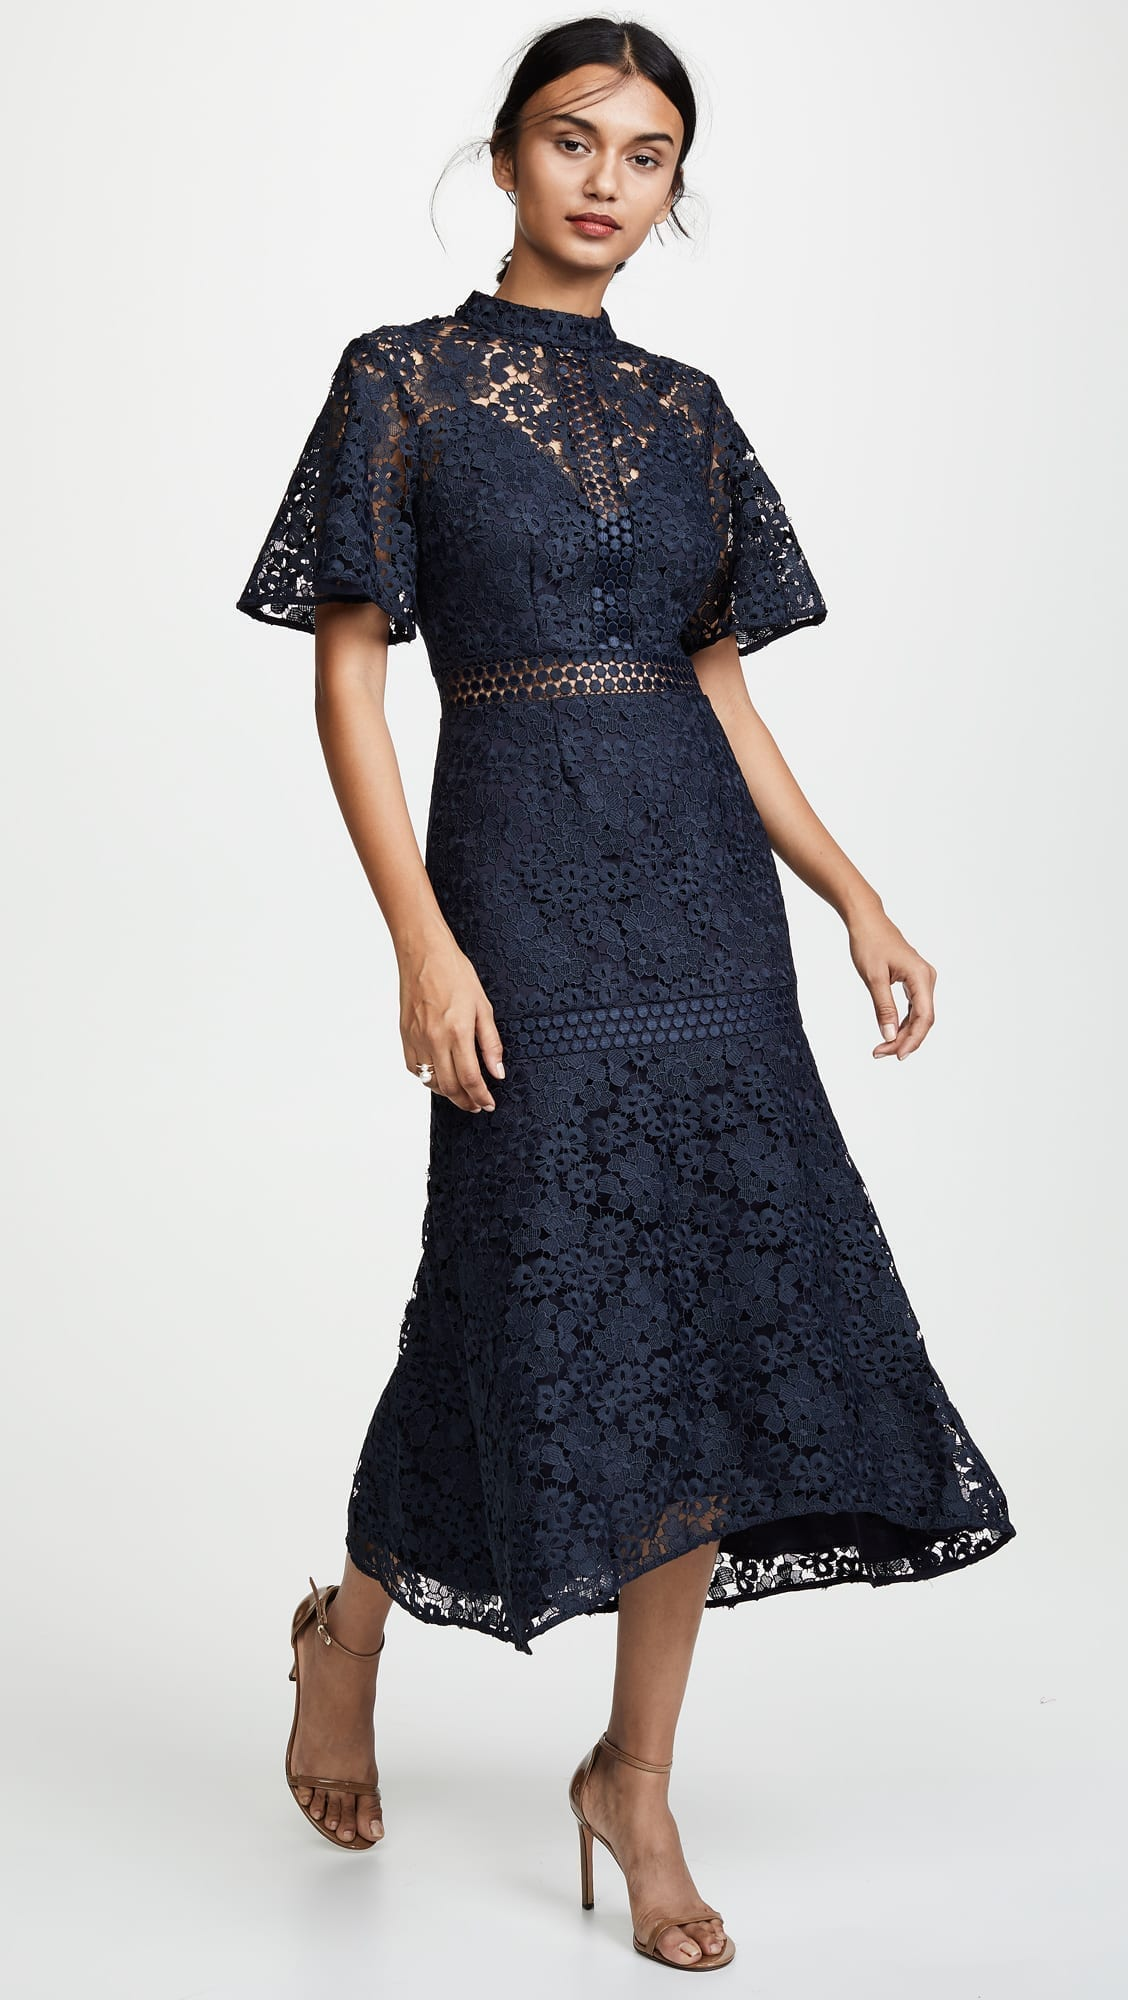 aa5f01621cc4 KEEPSAKE Utopia Lace Midi Navy Dress - We Select Dresses